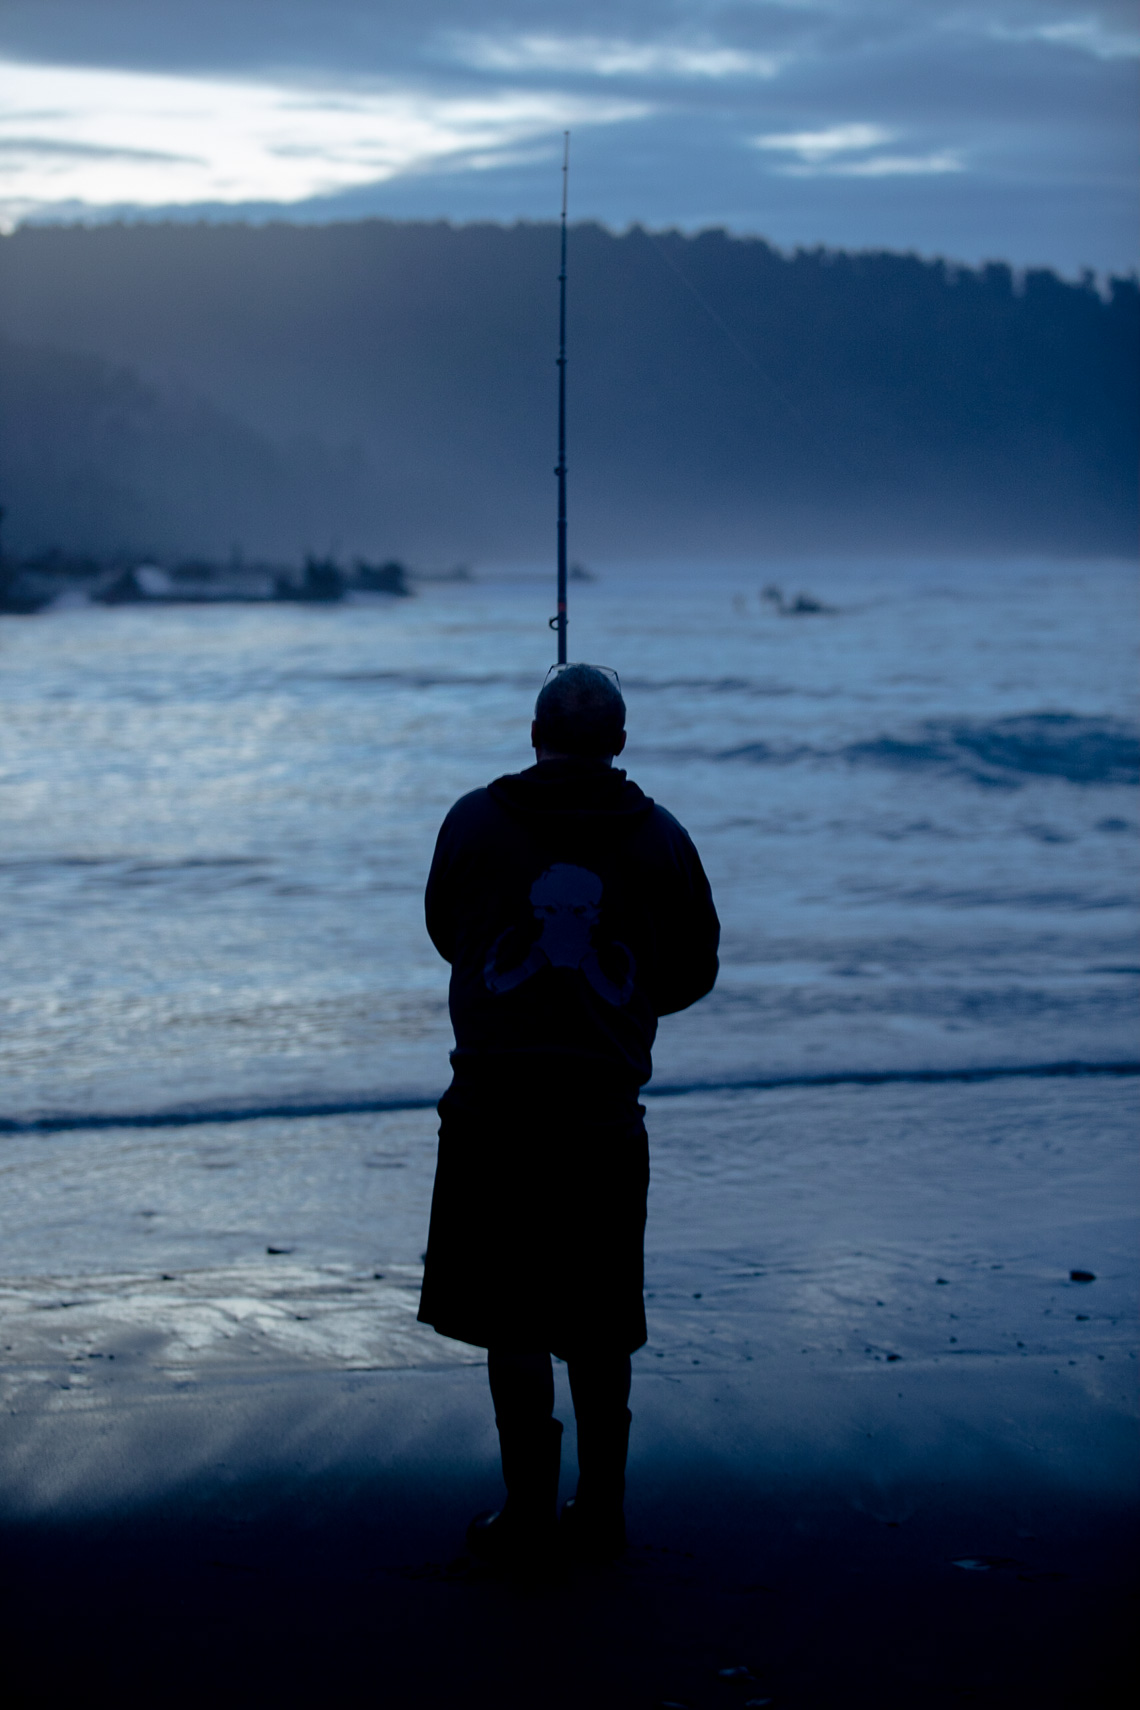 Fisherman trying his luck surfasting on the West Coast by Paul Green Photographer